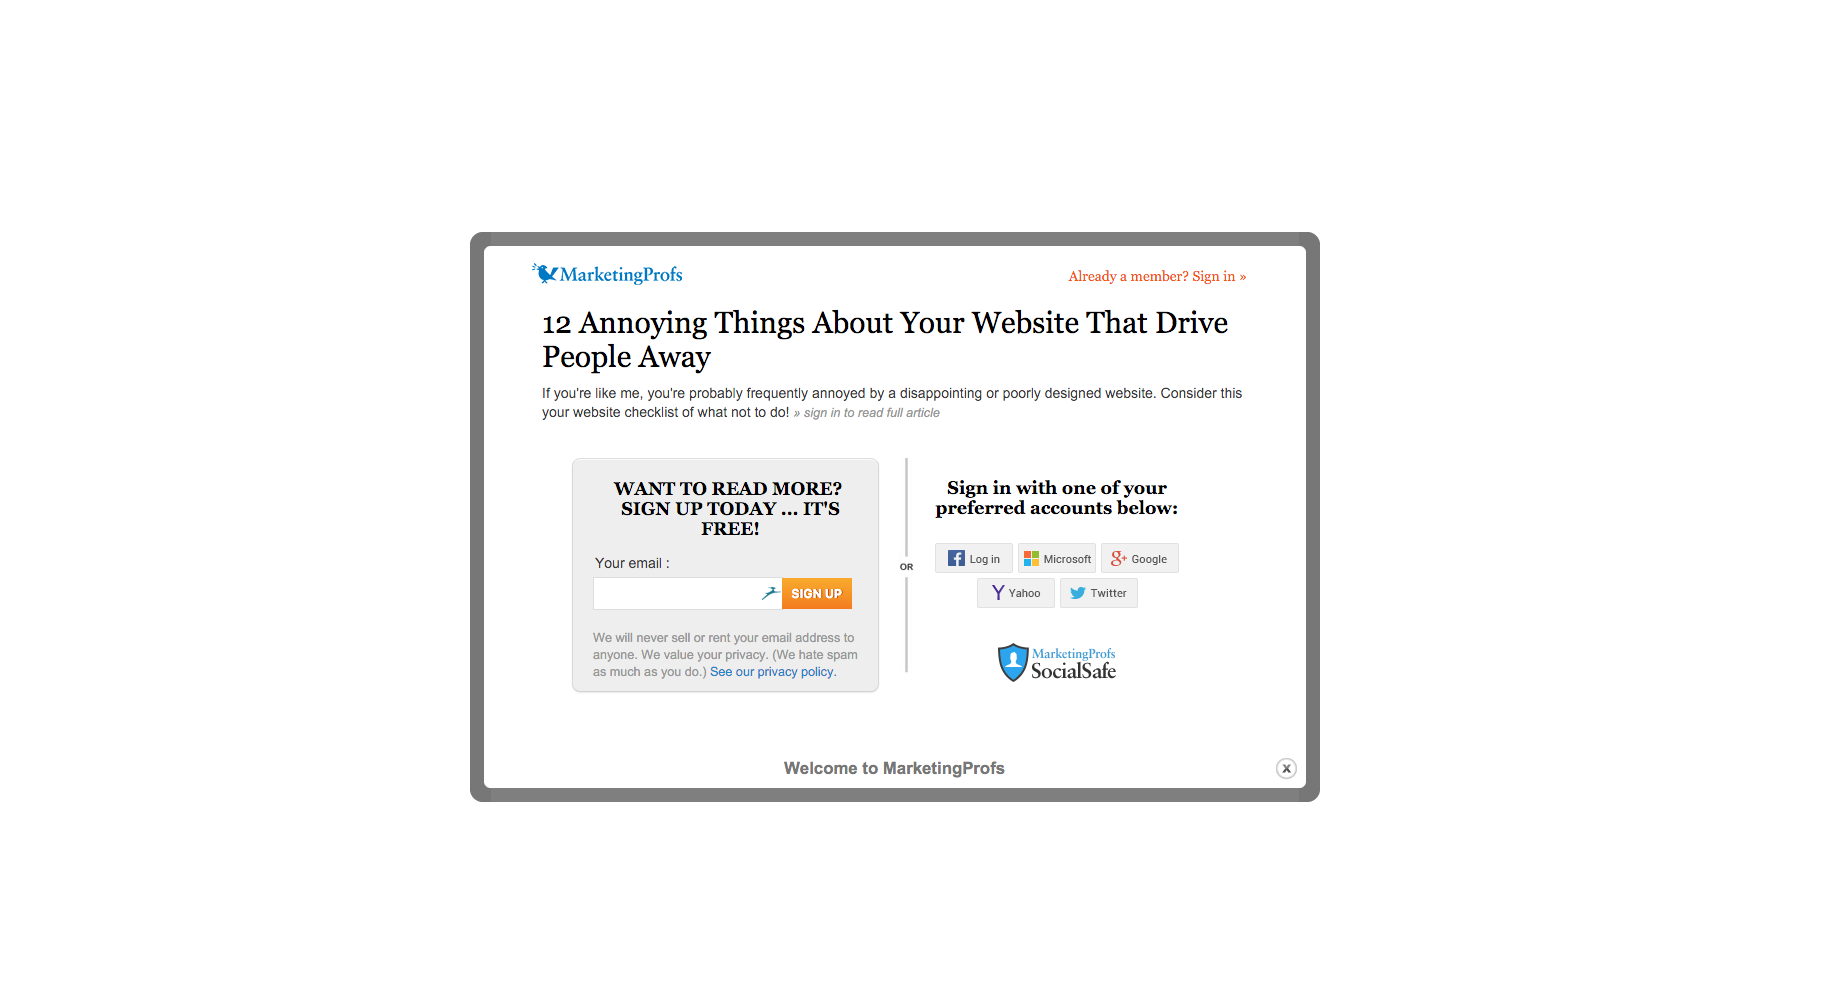 An image of an article relating to annoying websites